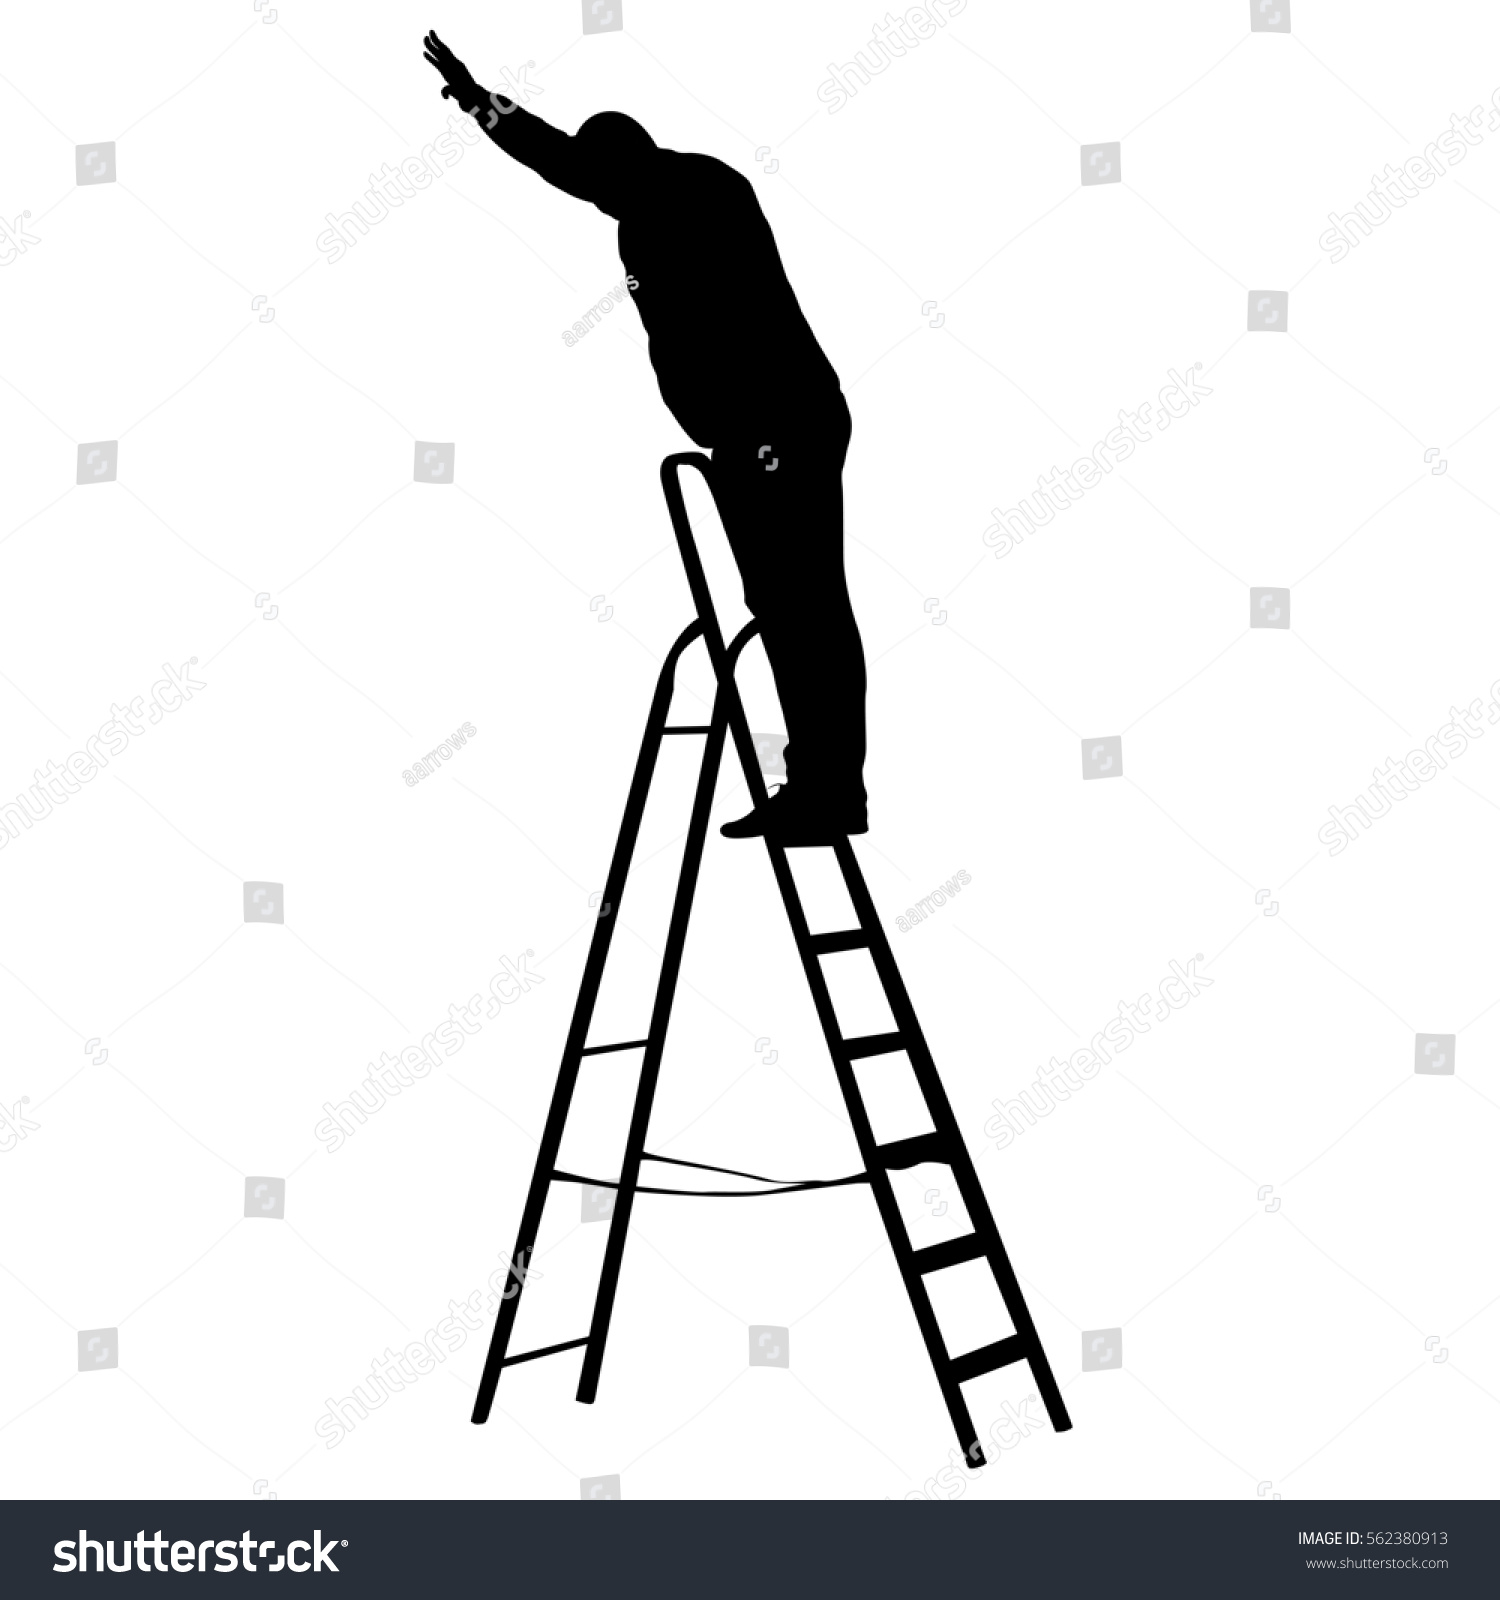 Silhouette Worker Climbing Ladder Illustration Stock Illustration ... for Worker Climbing Ladder  181pct